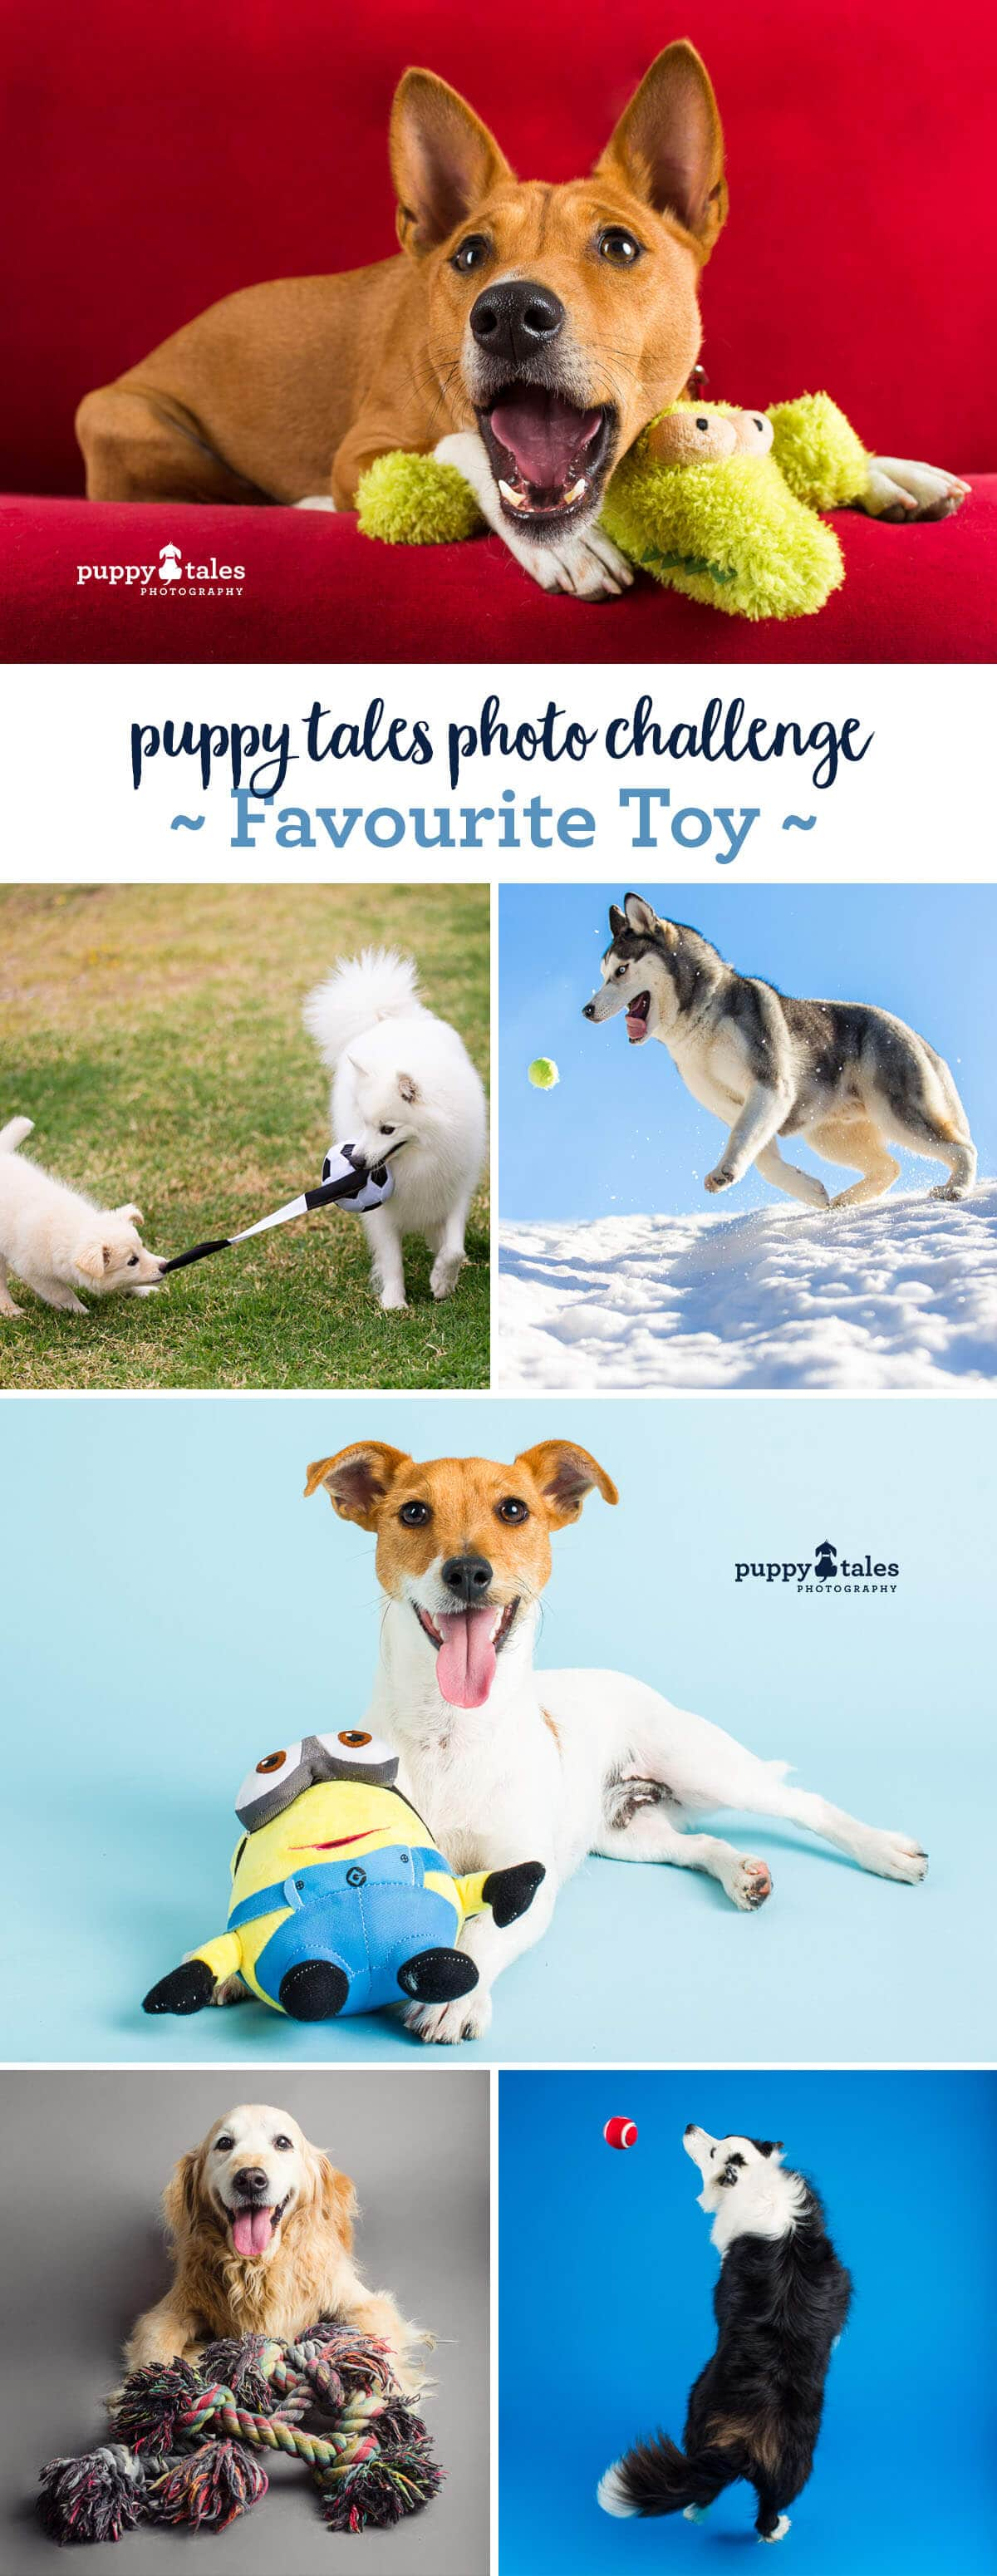 Puppy Tales Dog Photo Challenge ~ Favourite Toy